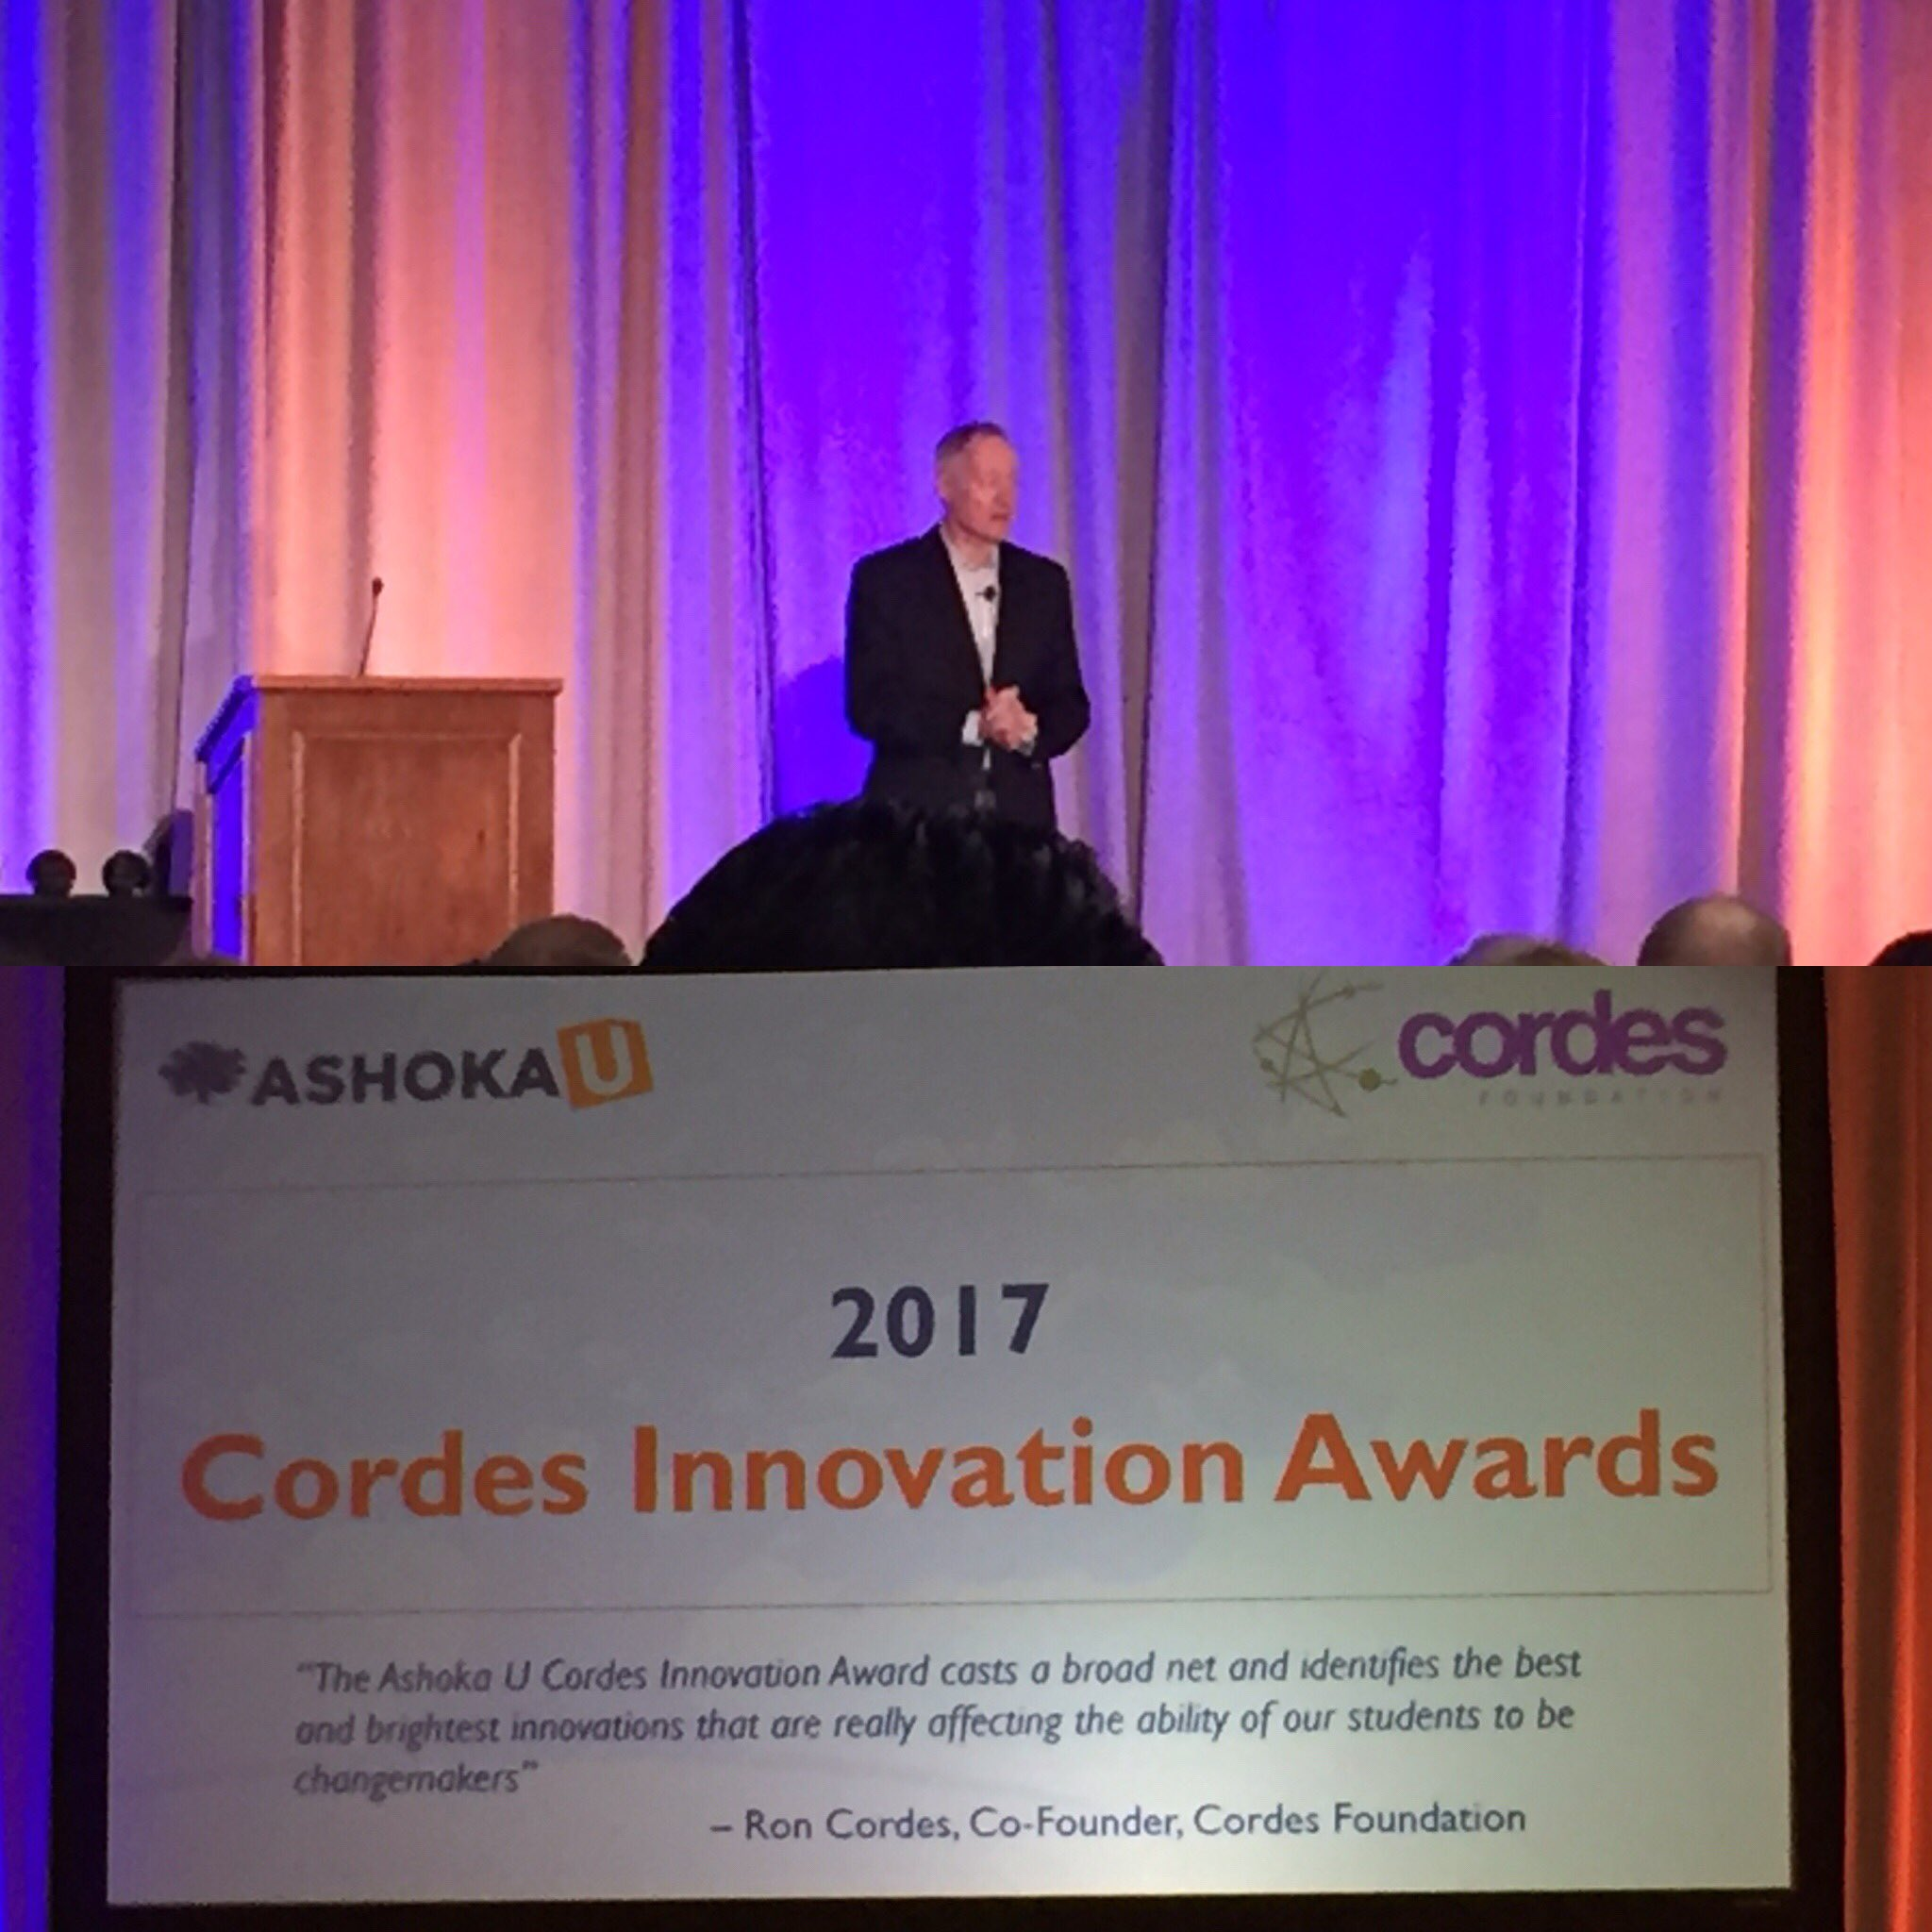 Great to see @cordesfdn #innovation awards for social entrepreneurs & #highered at #Exchange2017 #in @CraigZelizer https://t.co/qc5YShbzUj